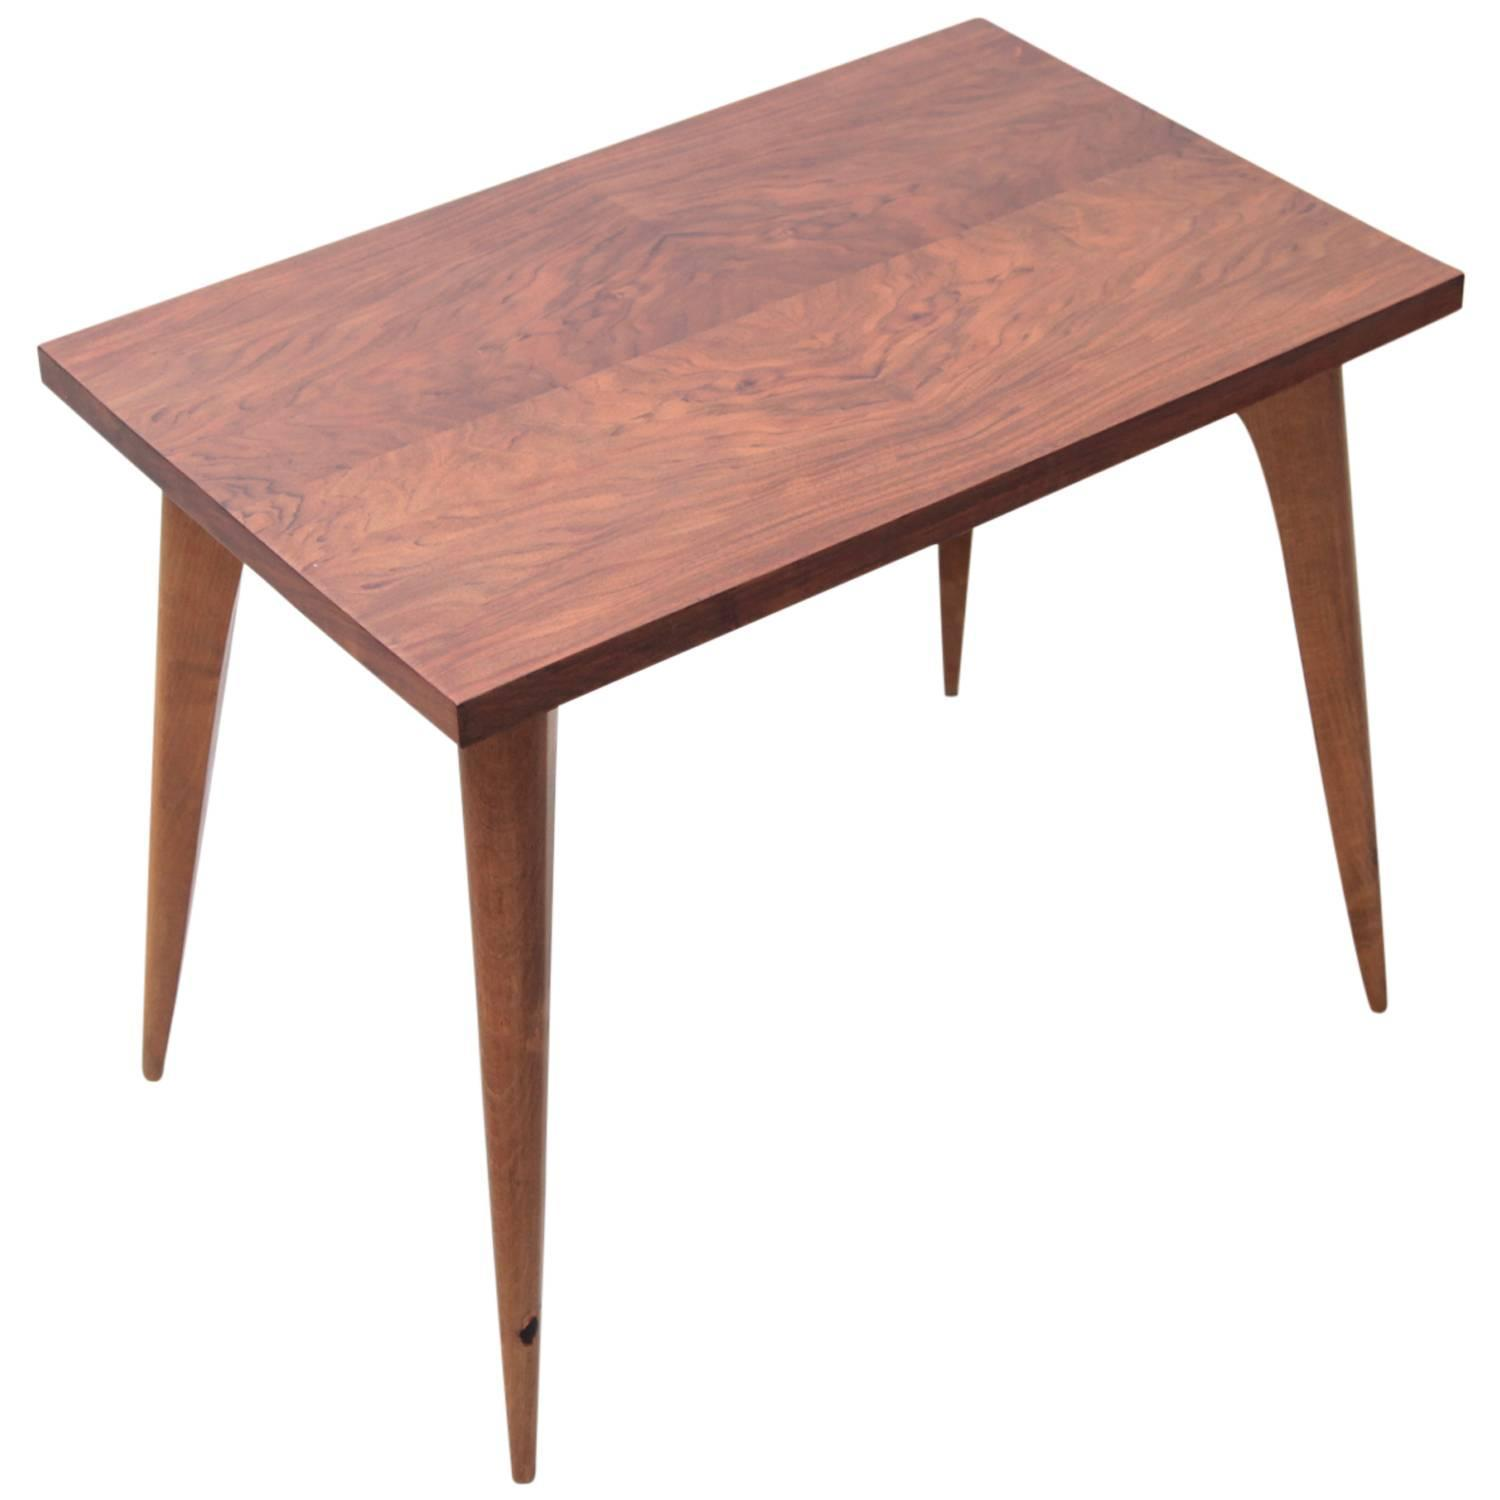 1930s Art Deco Side Table in Walnut Made in France For Sale at 1stdibs